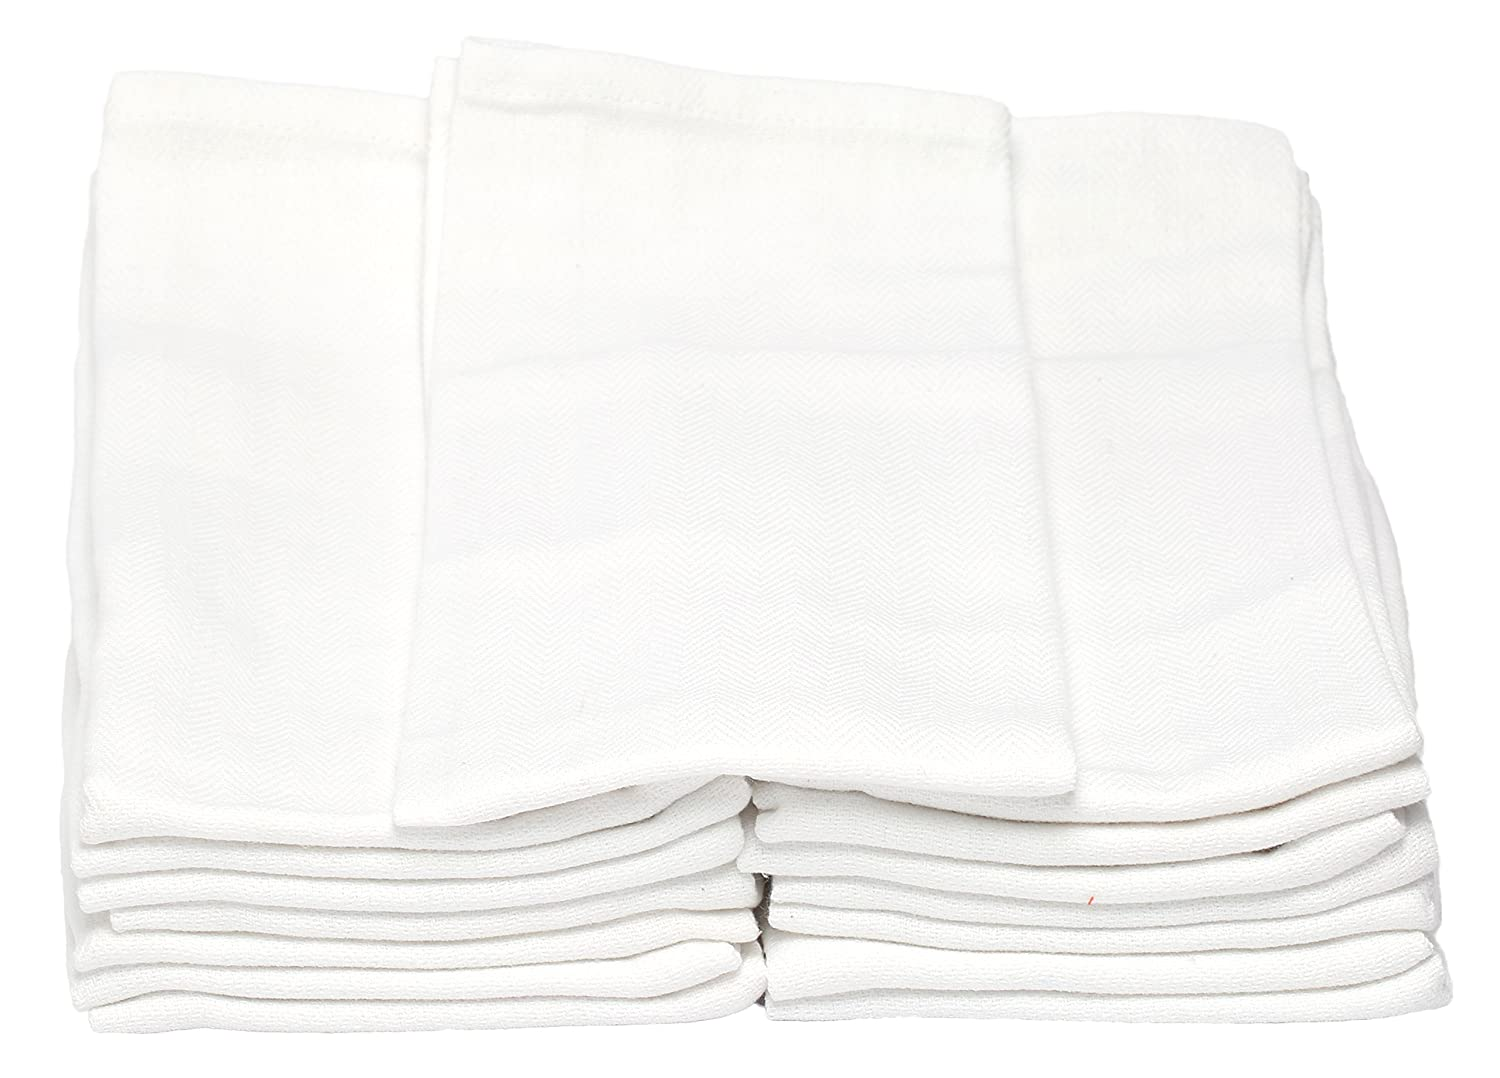 100/% Natural Cotton Melange 180 PACK Classic Kitchen Towels 14 x 25 Commercial Restaurant Grade Absorbent and Lint-Free Machine Washable Solid White Dish Basics 710228914842 Herringbone Weave Dish Cloth